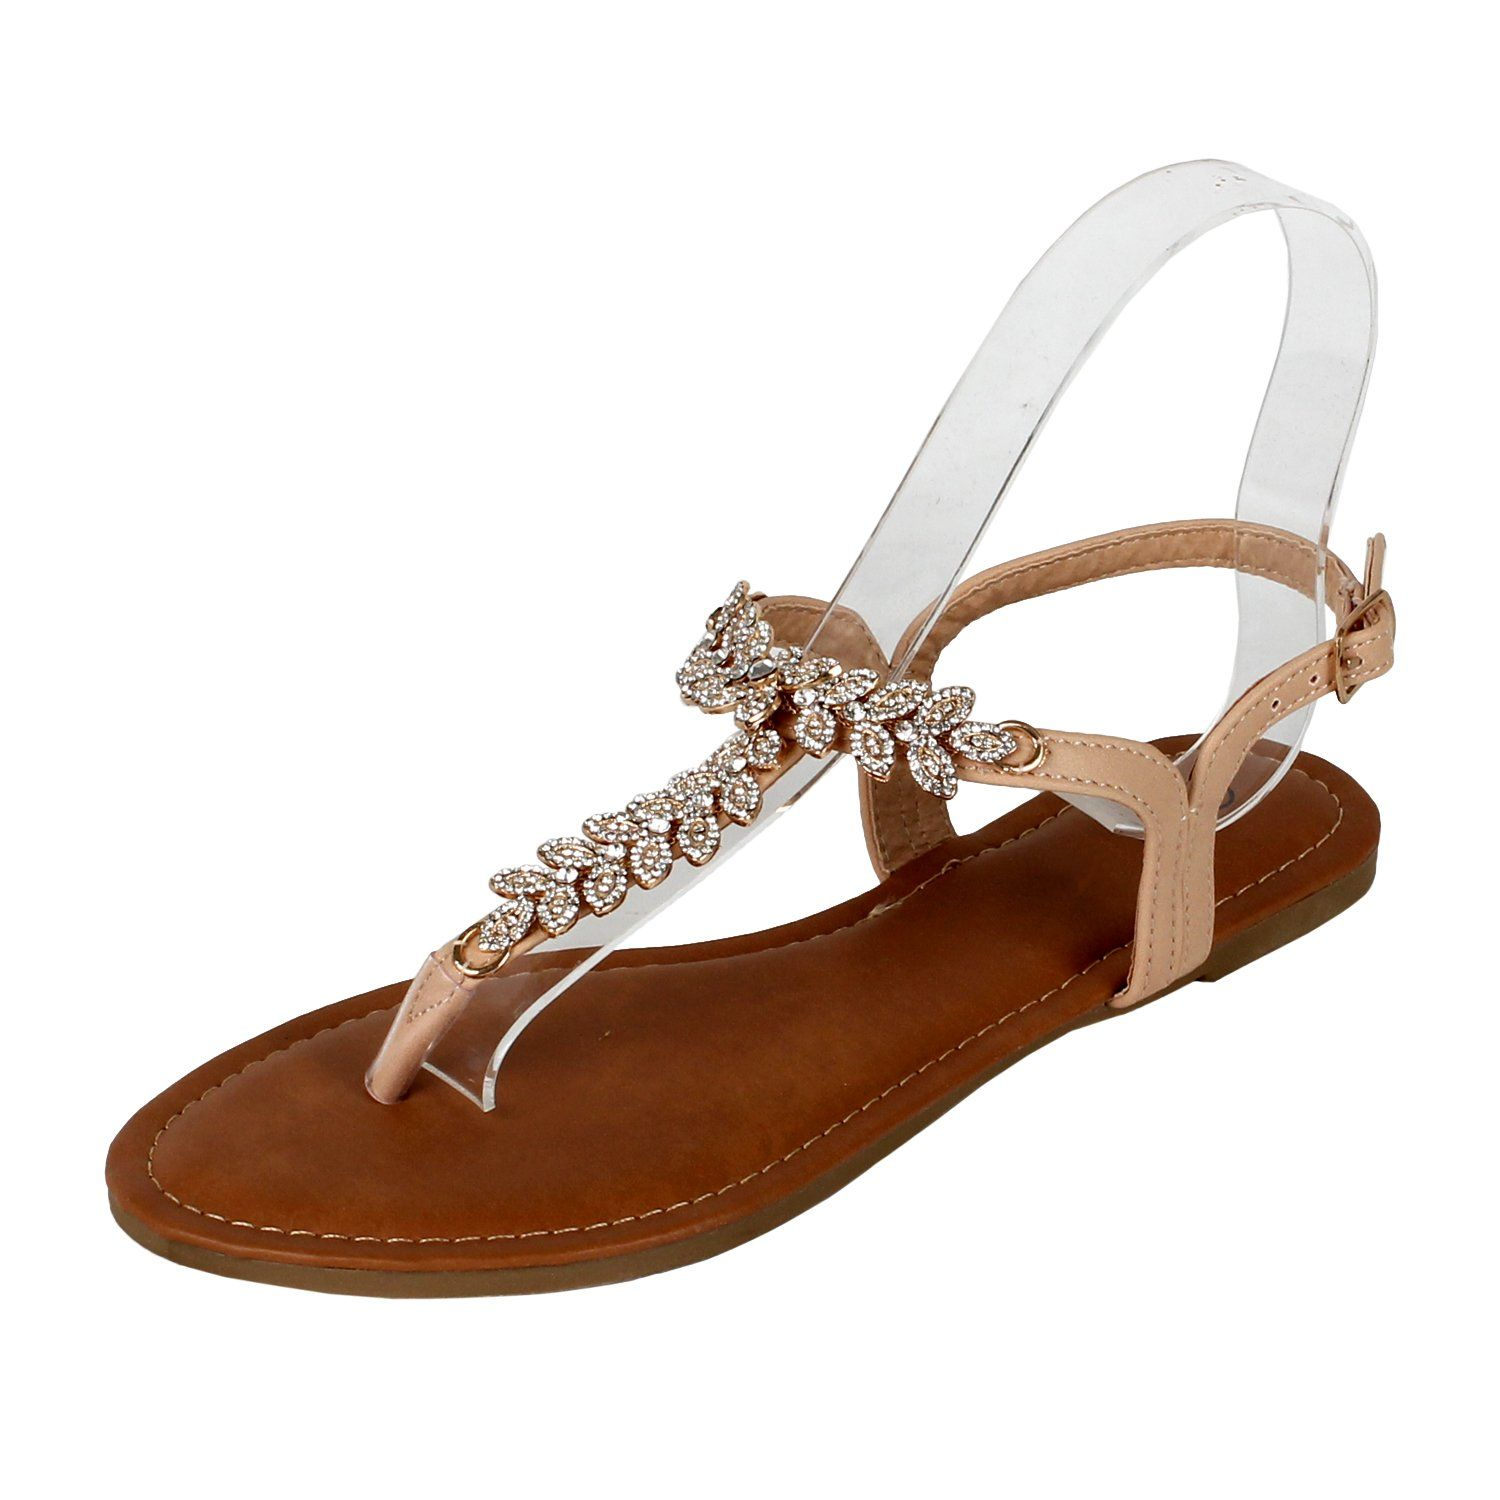 7cace249442a Guilty Shoes Rhinestone Sparkle Women S Sling Back Spring Summer Casual  Thong Flat Sandal Sandals -- Read more at the image link.